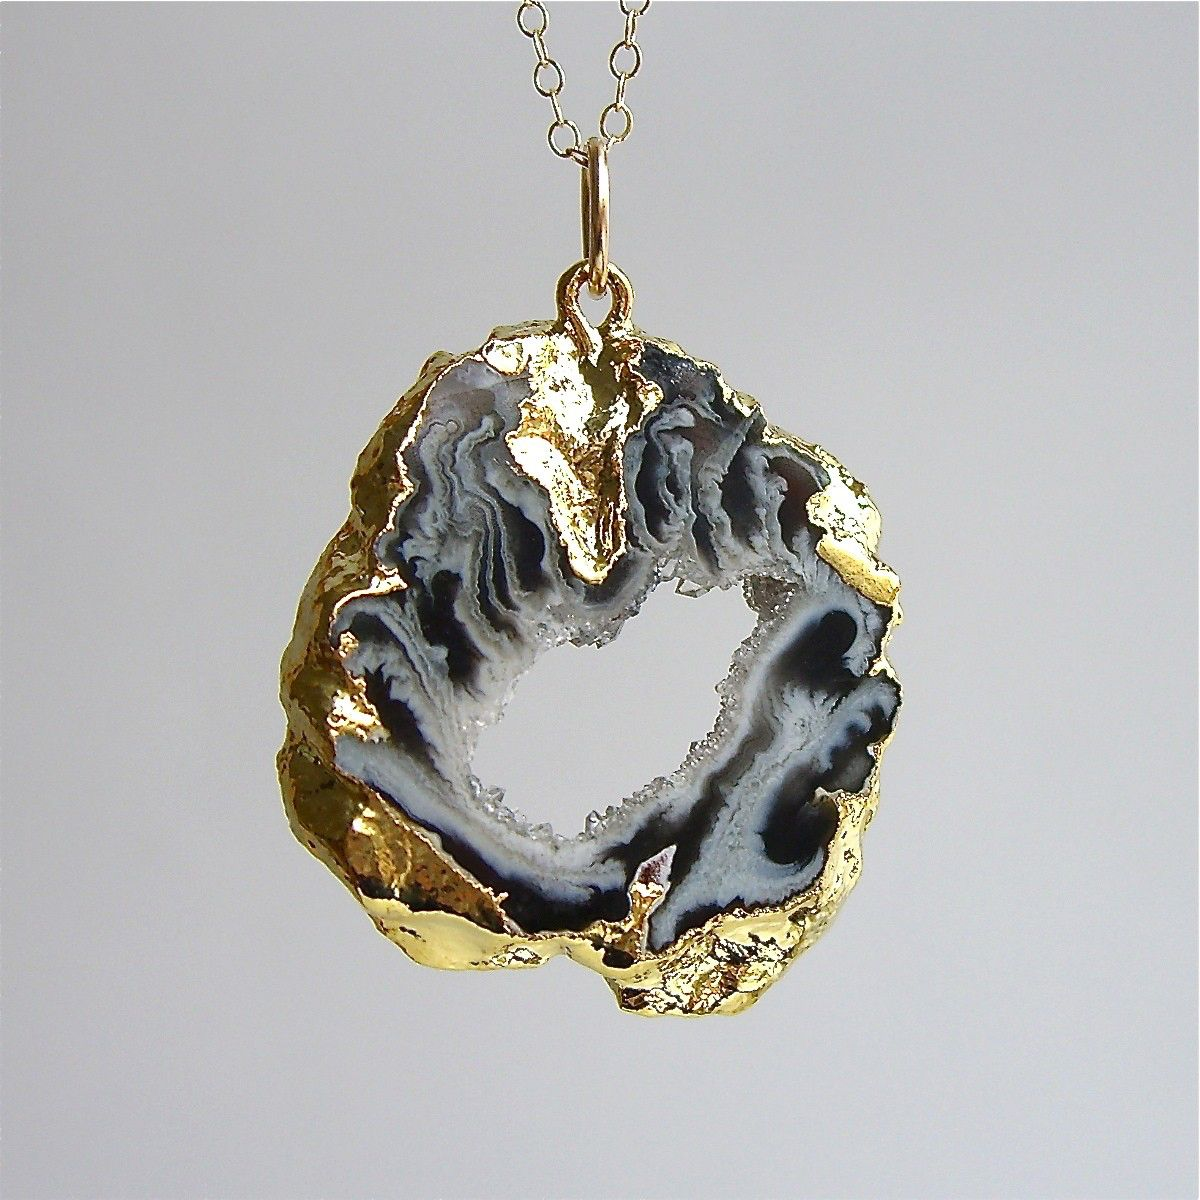 Gold-fill Long Gold Plated Geode Slice Necklace by solisjewelry on Etsy https://www.etsy.com/listing/61248171/gold-fill-long-gold-plated-geode-slice